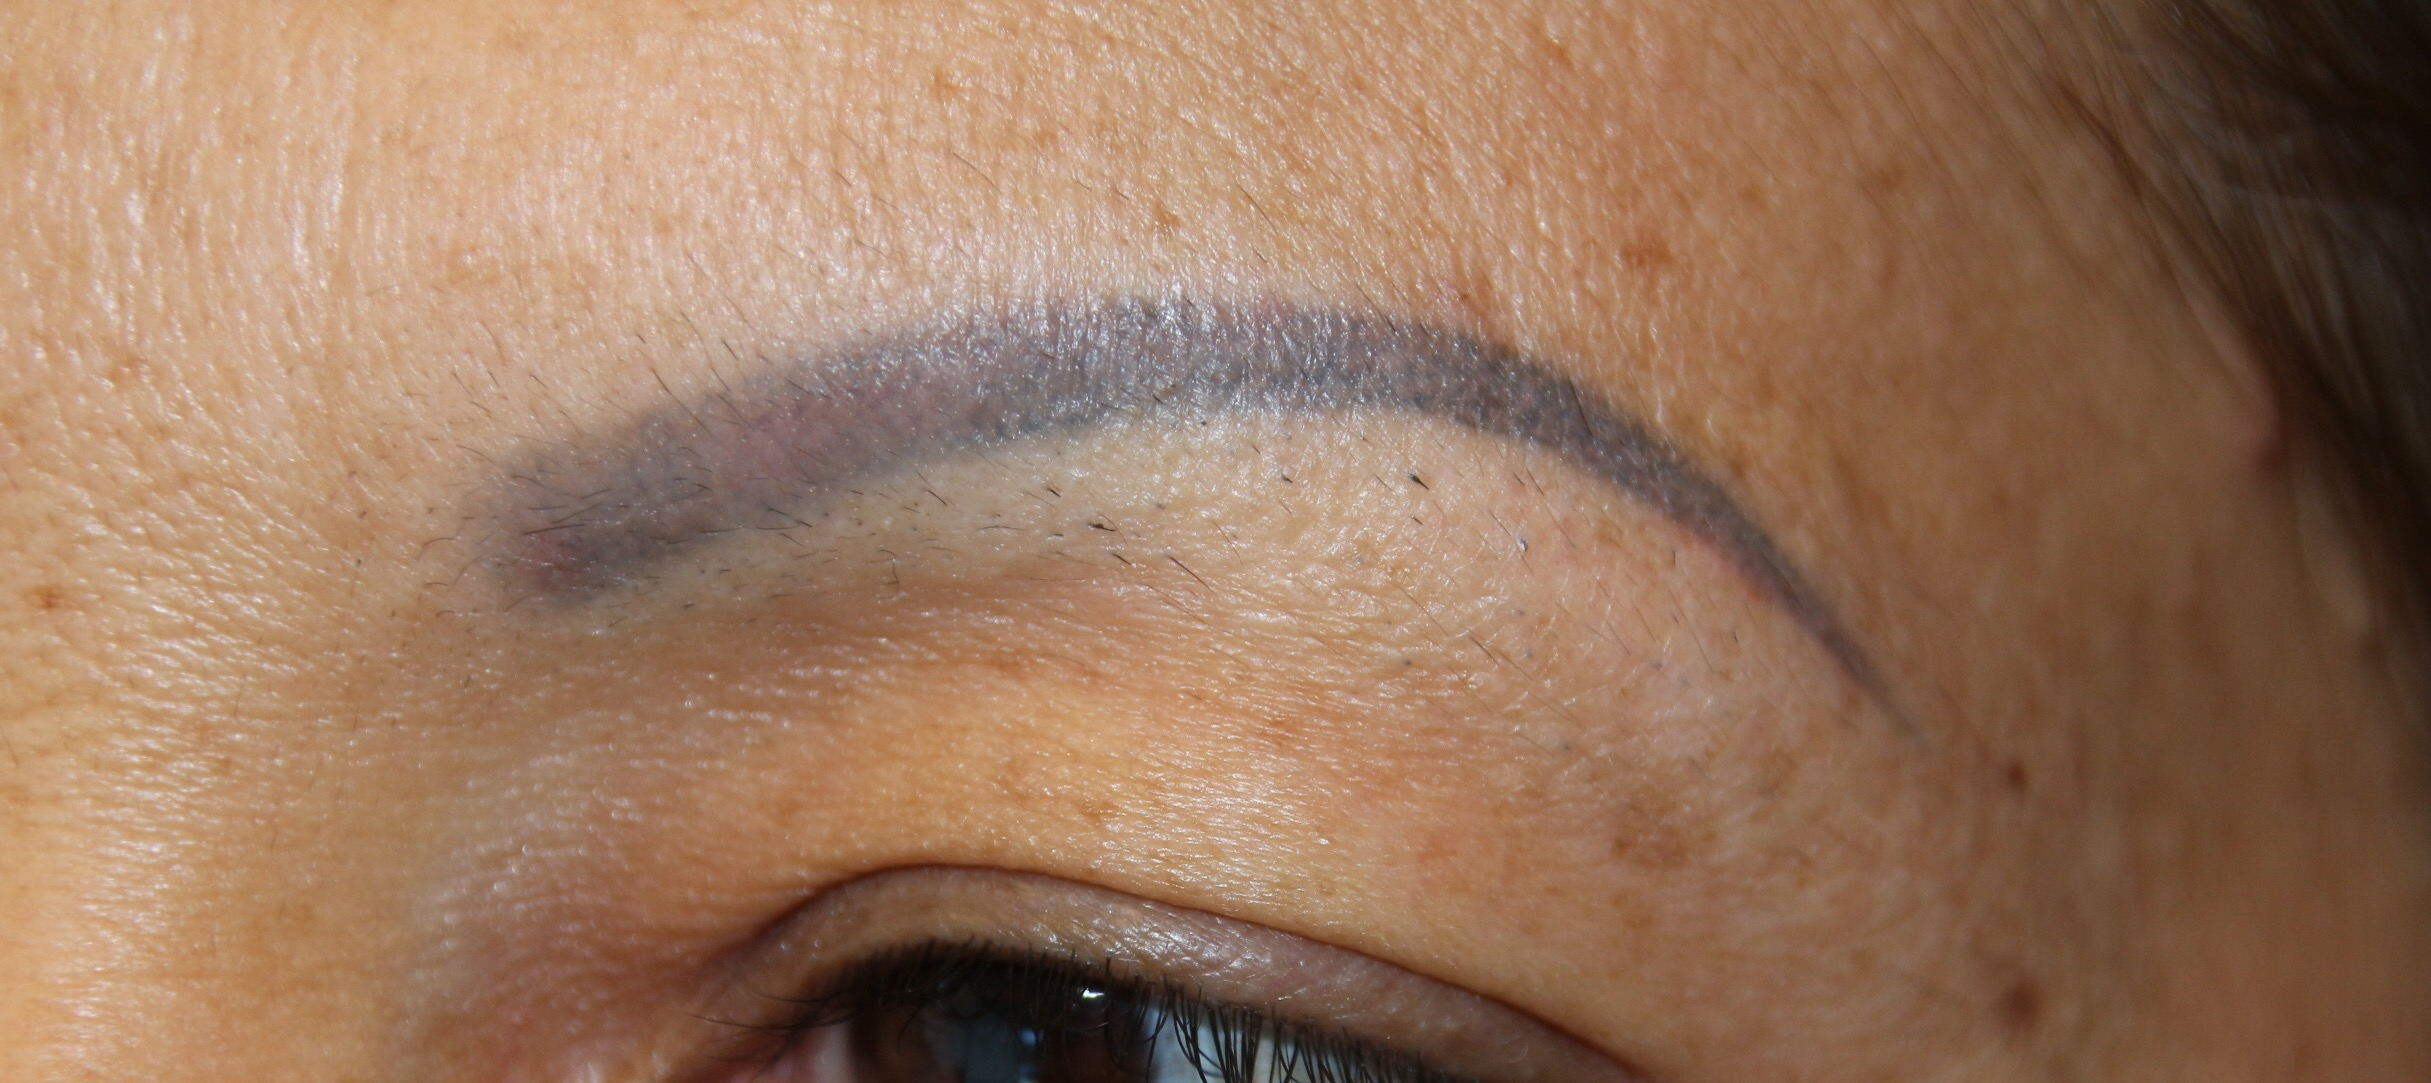 Client presented with faded but heavily saturated brow tattoo. The client's previous attempt with another technician at correcting the grey/blue tones that are typical of overly-dark colors in olive skin, led to traces of red pigment - so now the client had two-toned eyebrows.